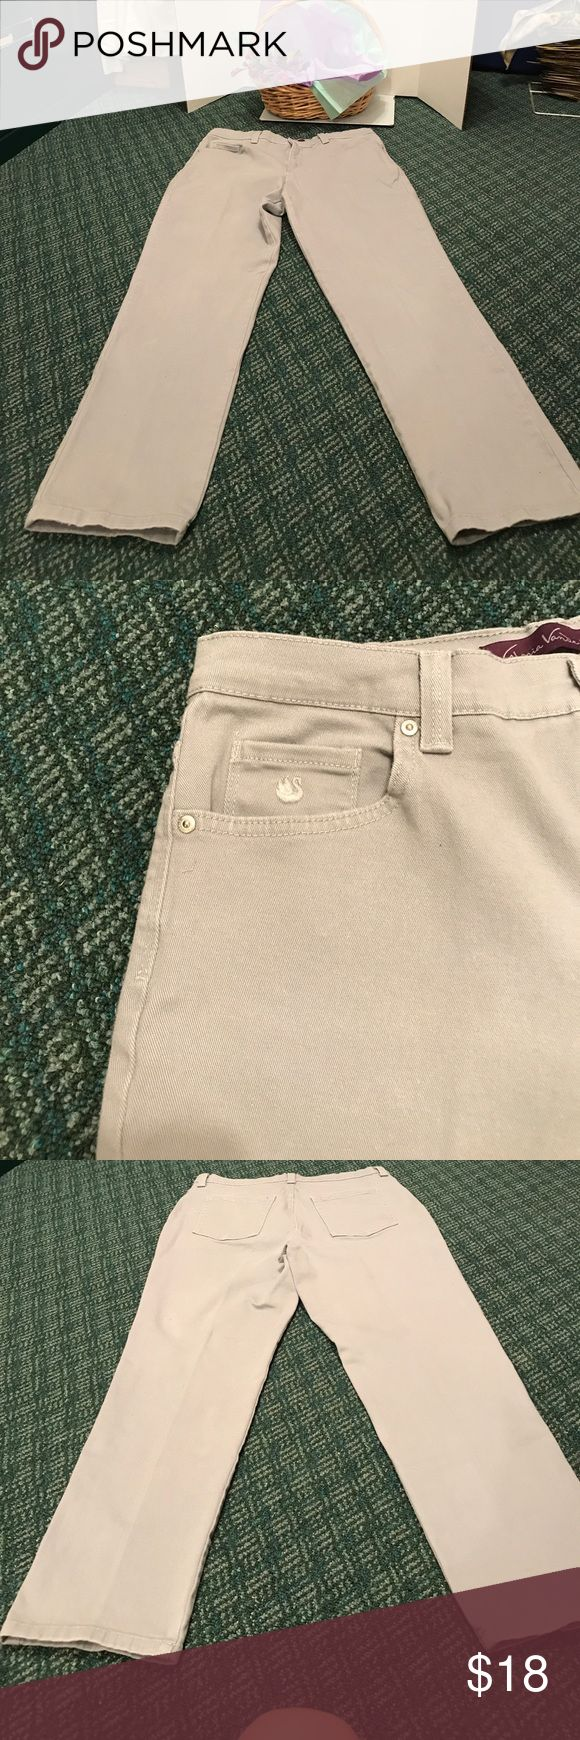 Gloria Vanderbilt Ladies light gray Jeans GV jeans are flattering and have a comfortably chic look - featuring a casual 5 pocket styling and a solid Glacial Gray color. Straight Legs. Like New no flaws. Jeans Straight Leg